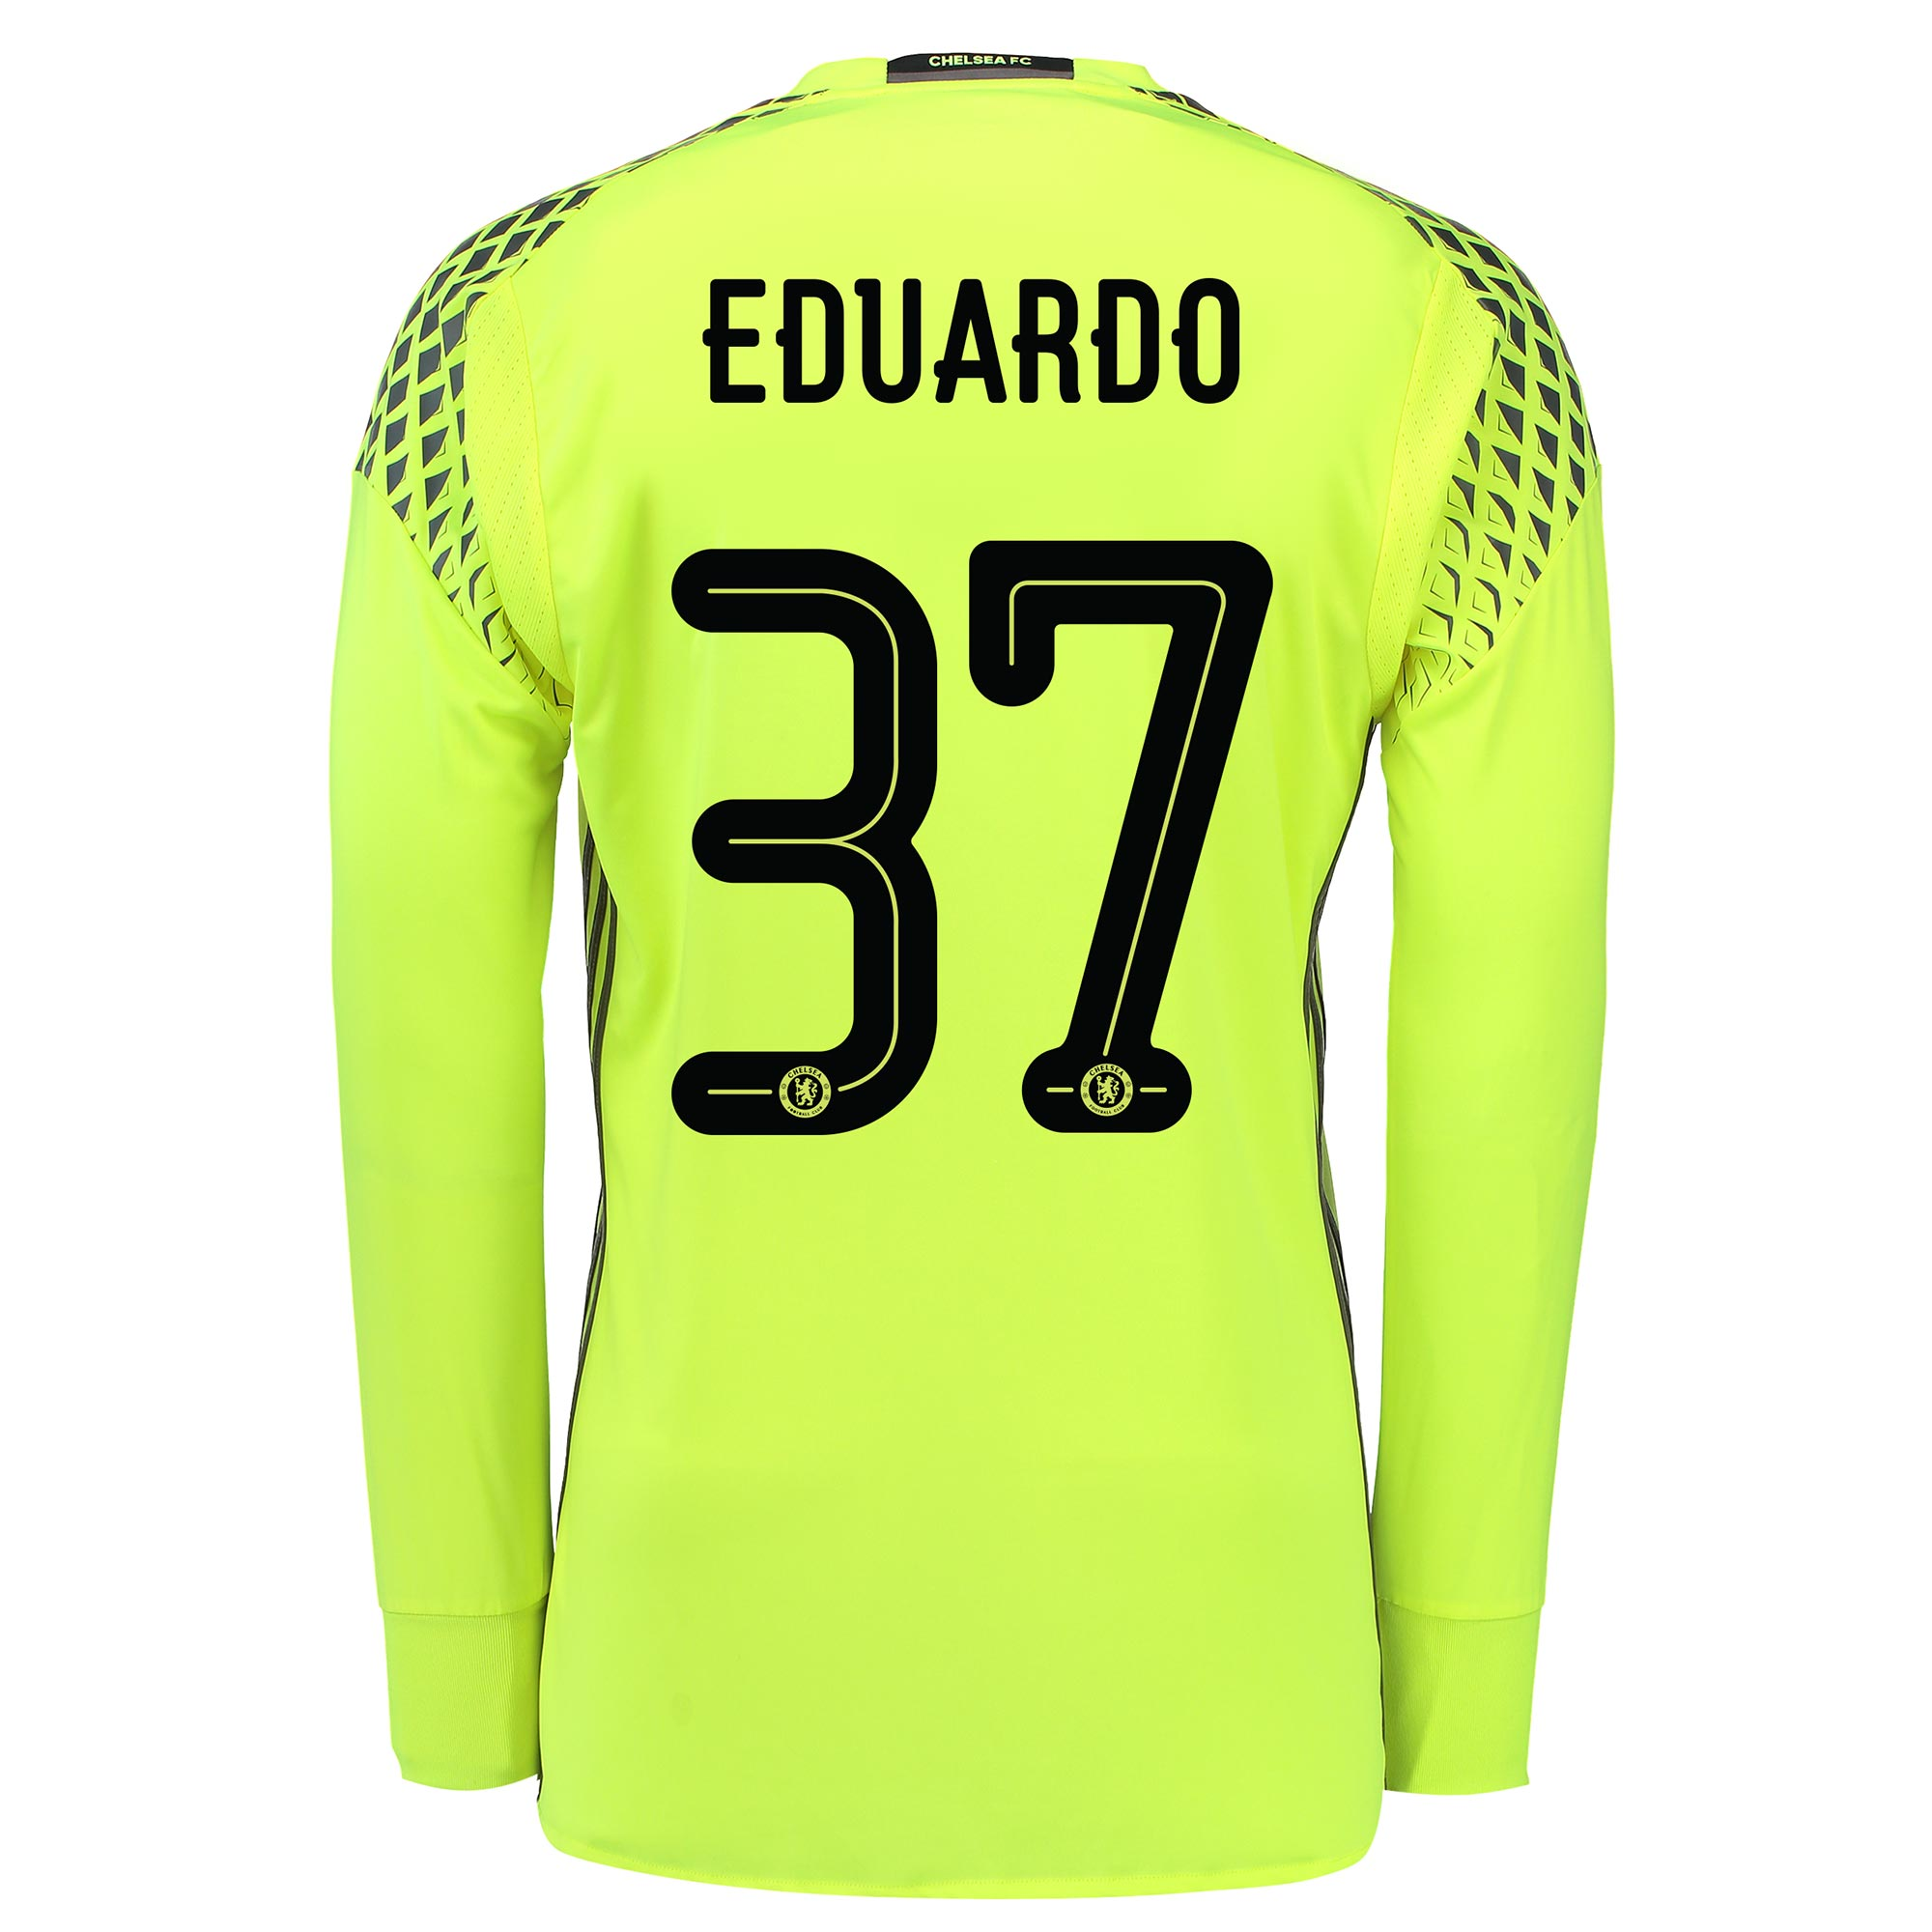 Chelsea Linear Goalkeeper Shirt 16-17 with Eduardo 37 printing